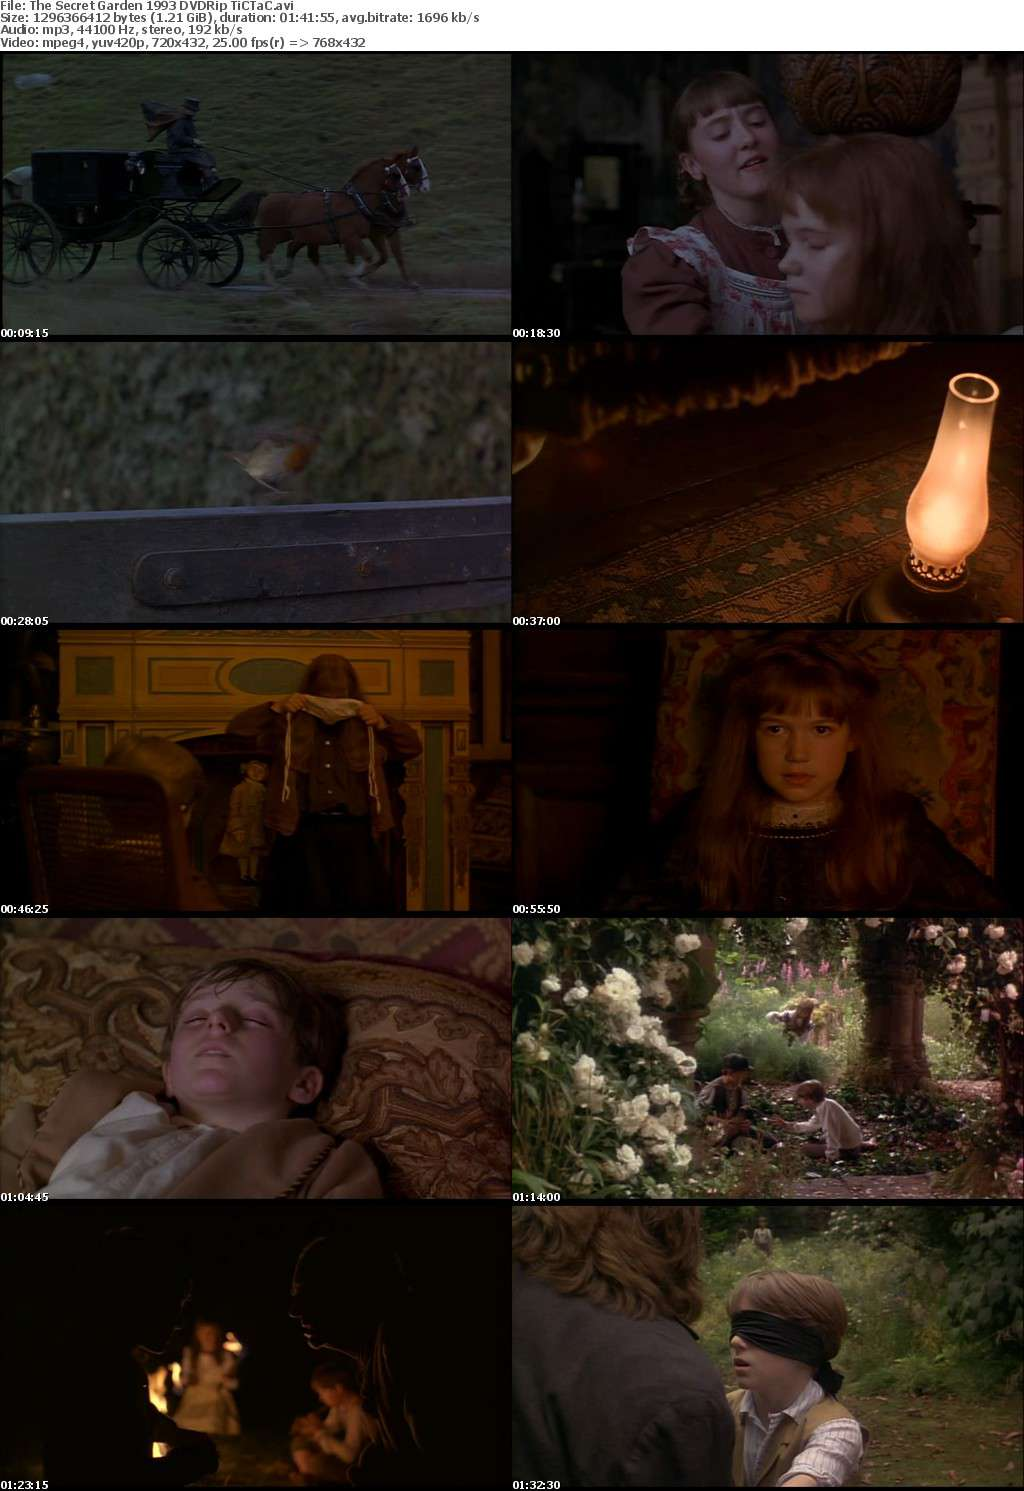 The Secret Garden 1993 DVDRip - TiCTaC